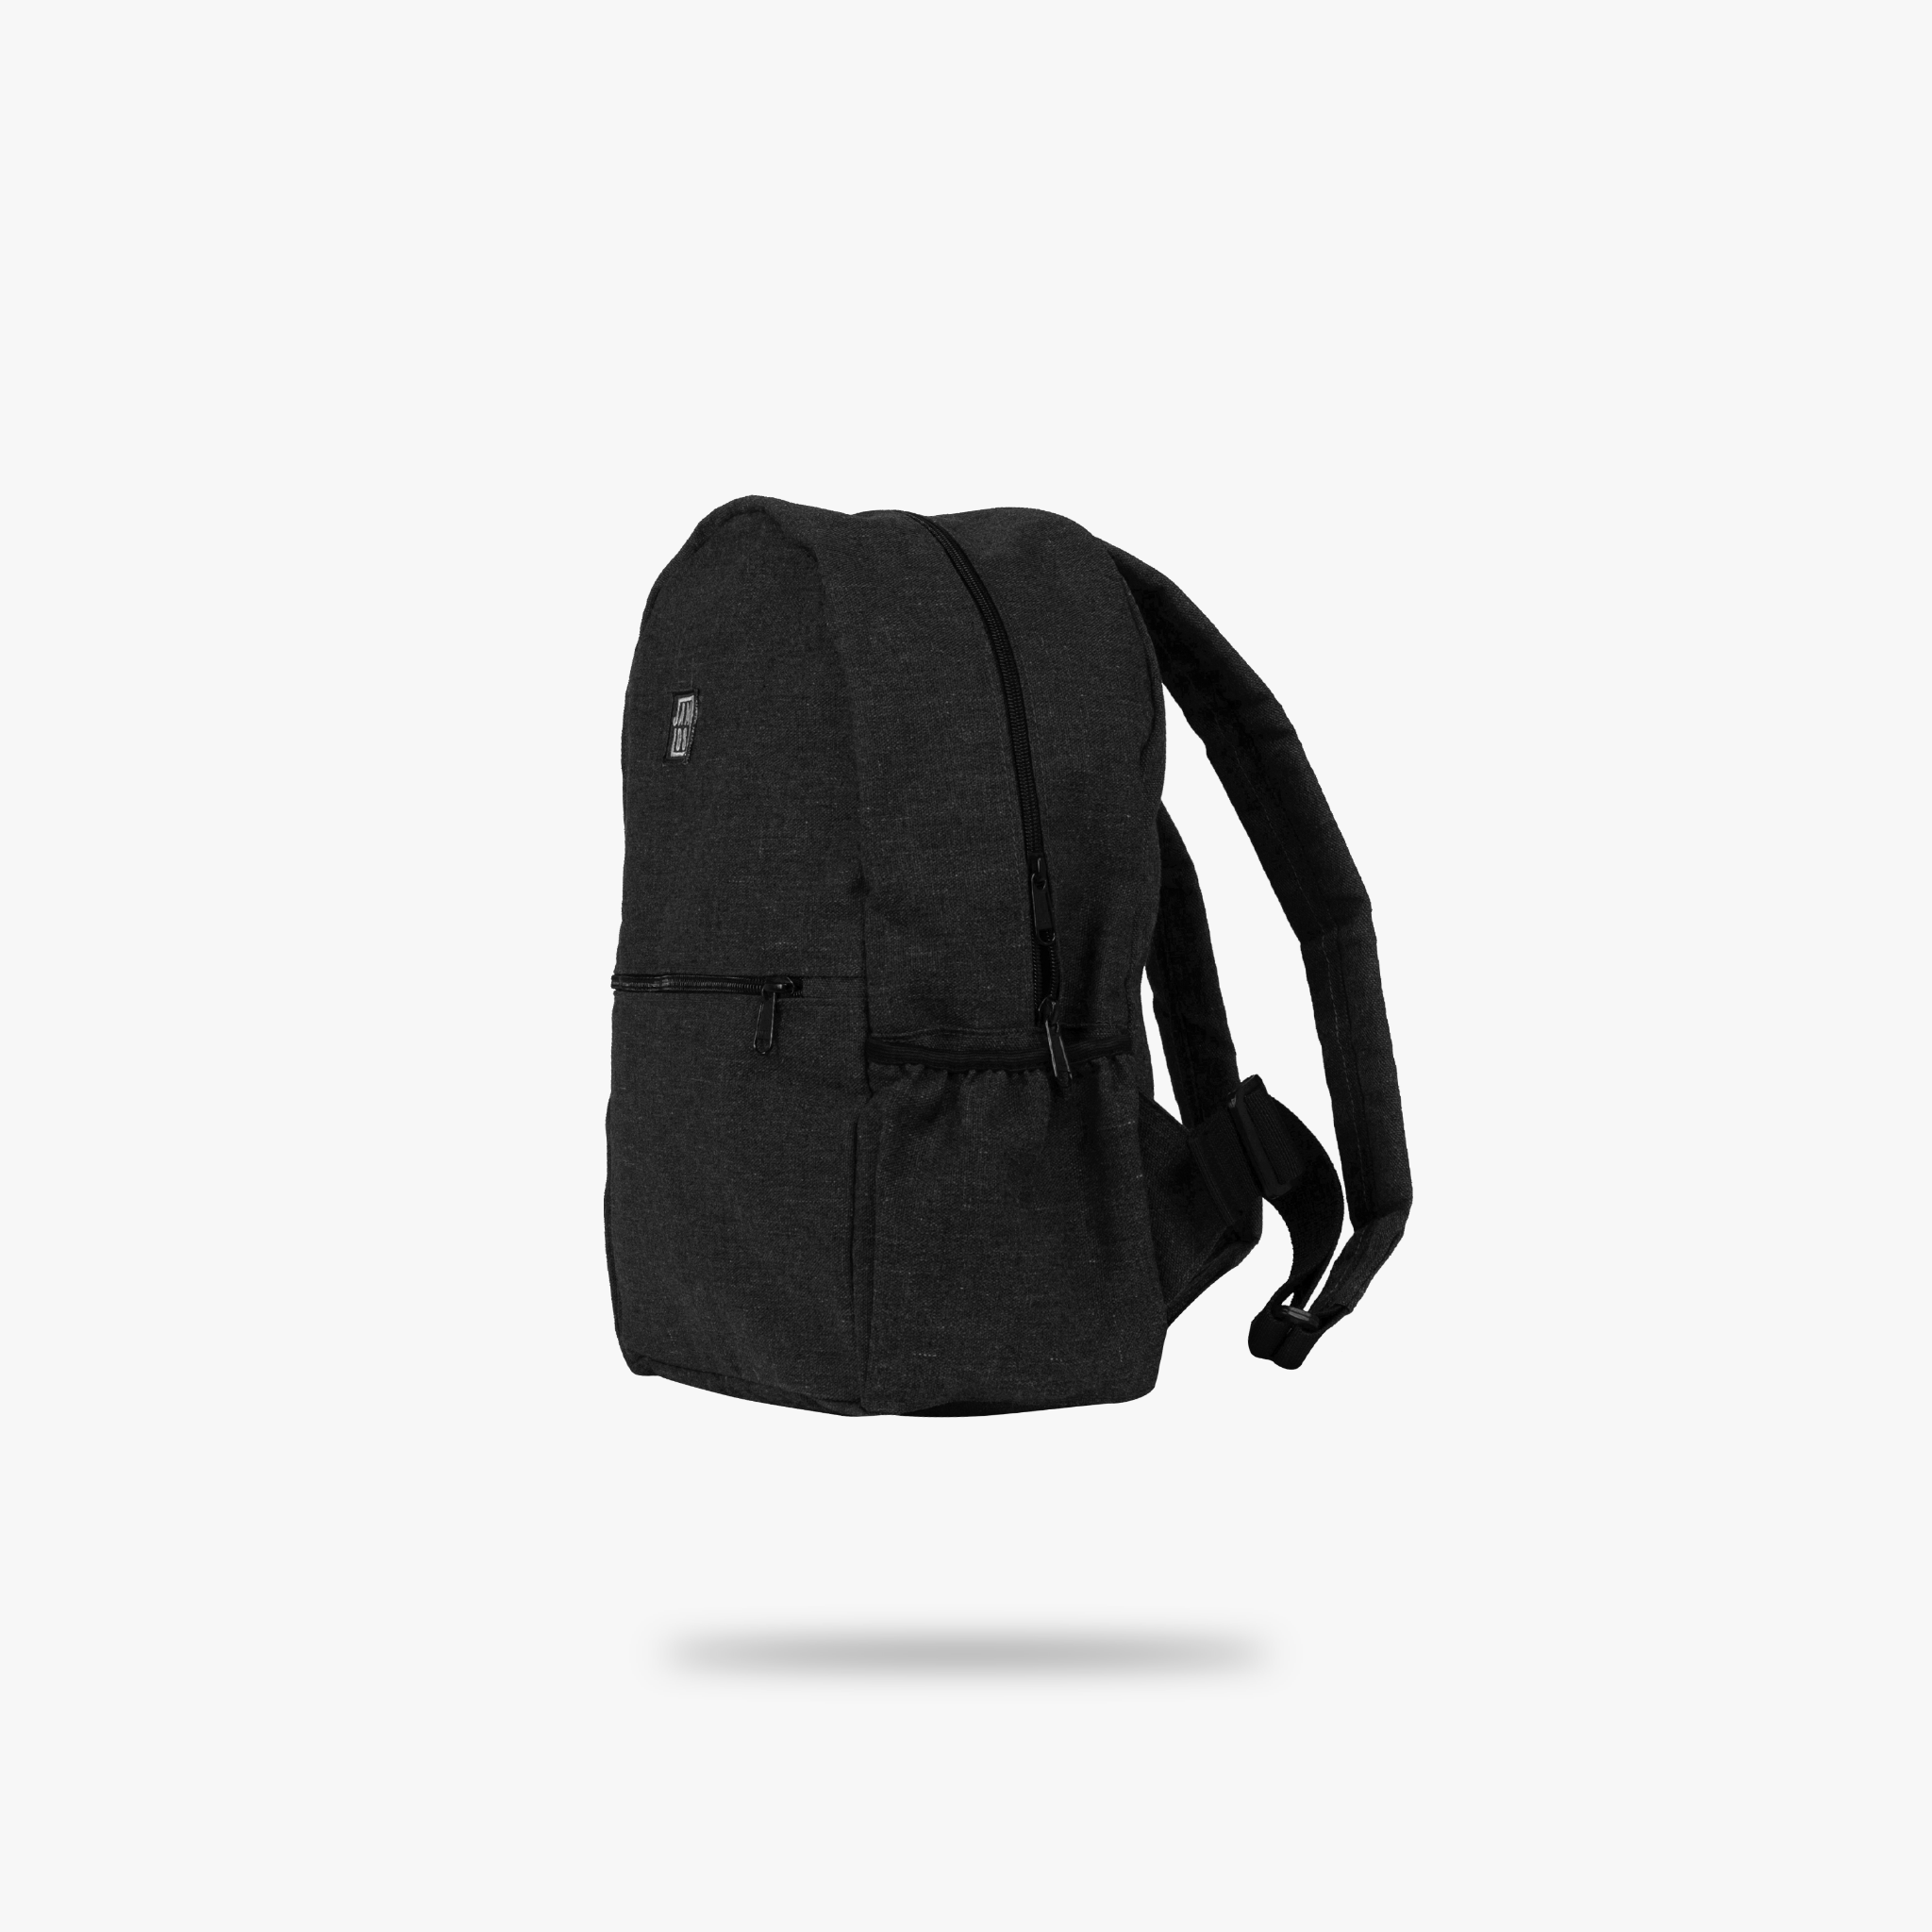 BASIC BACKPACK - Sand